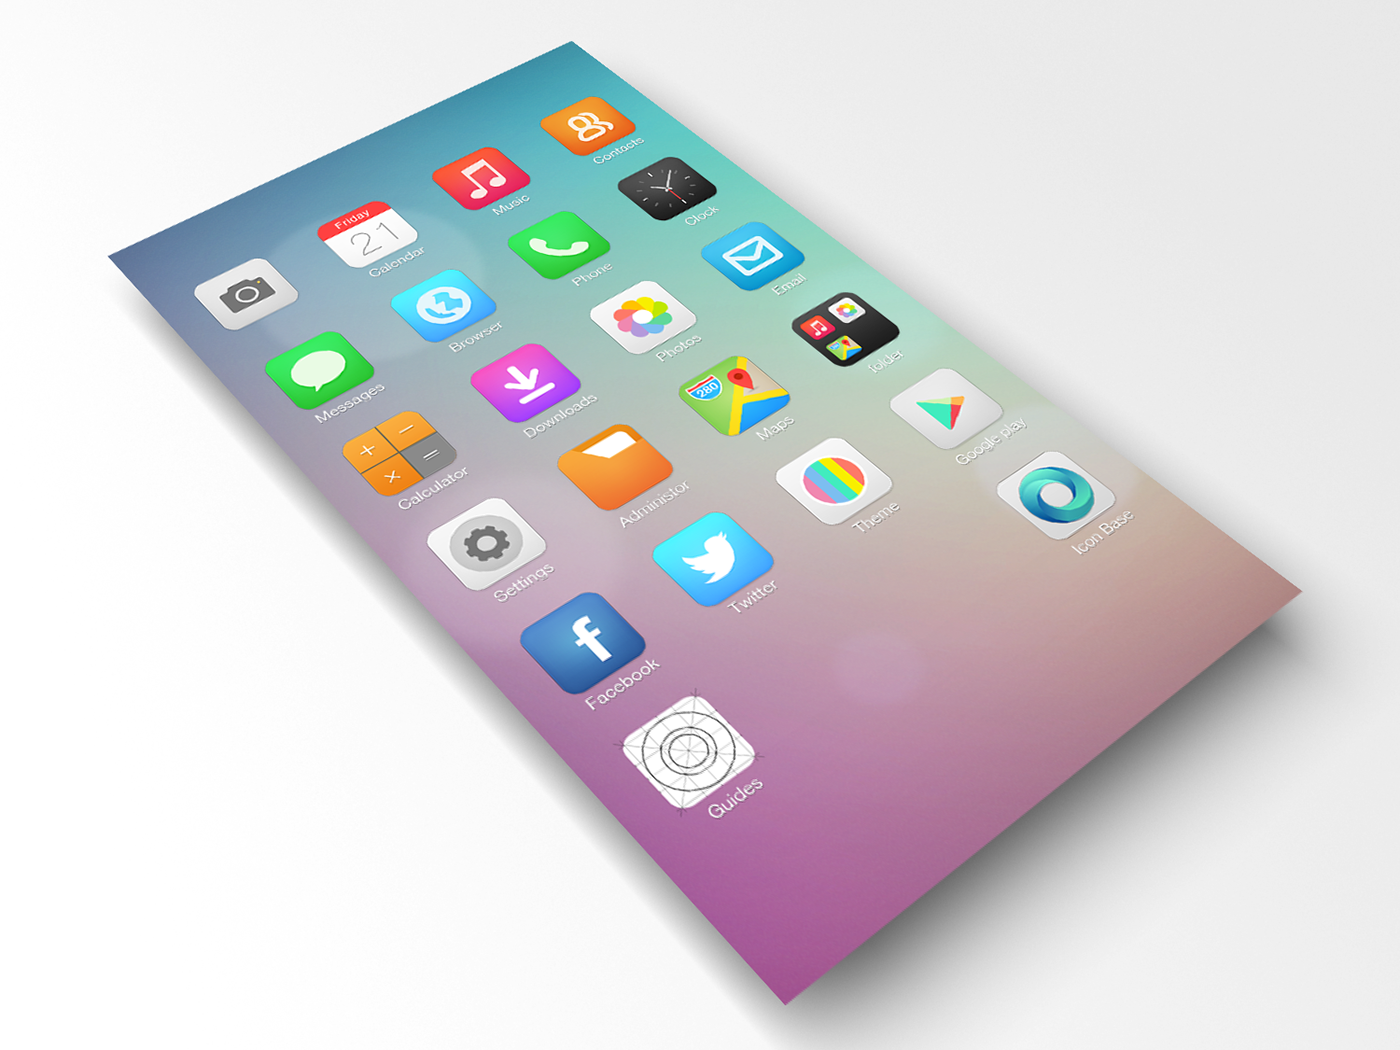 IOS 7 style icon for android on Behance